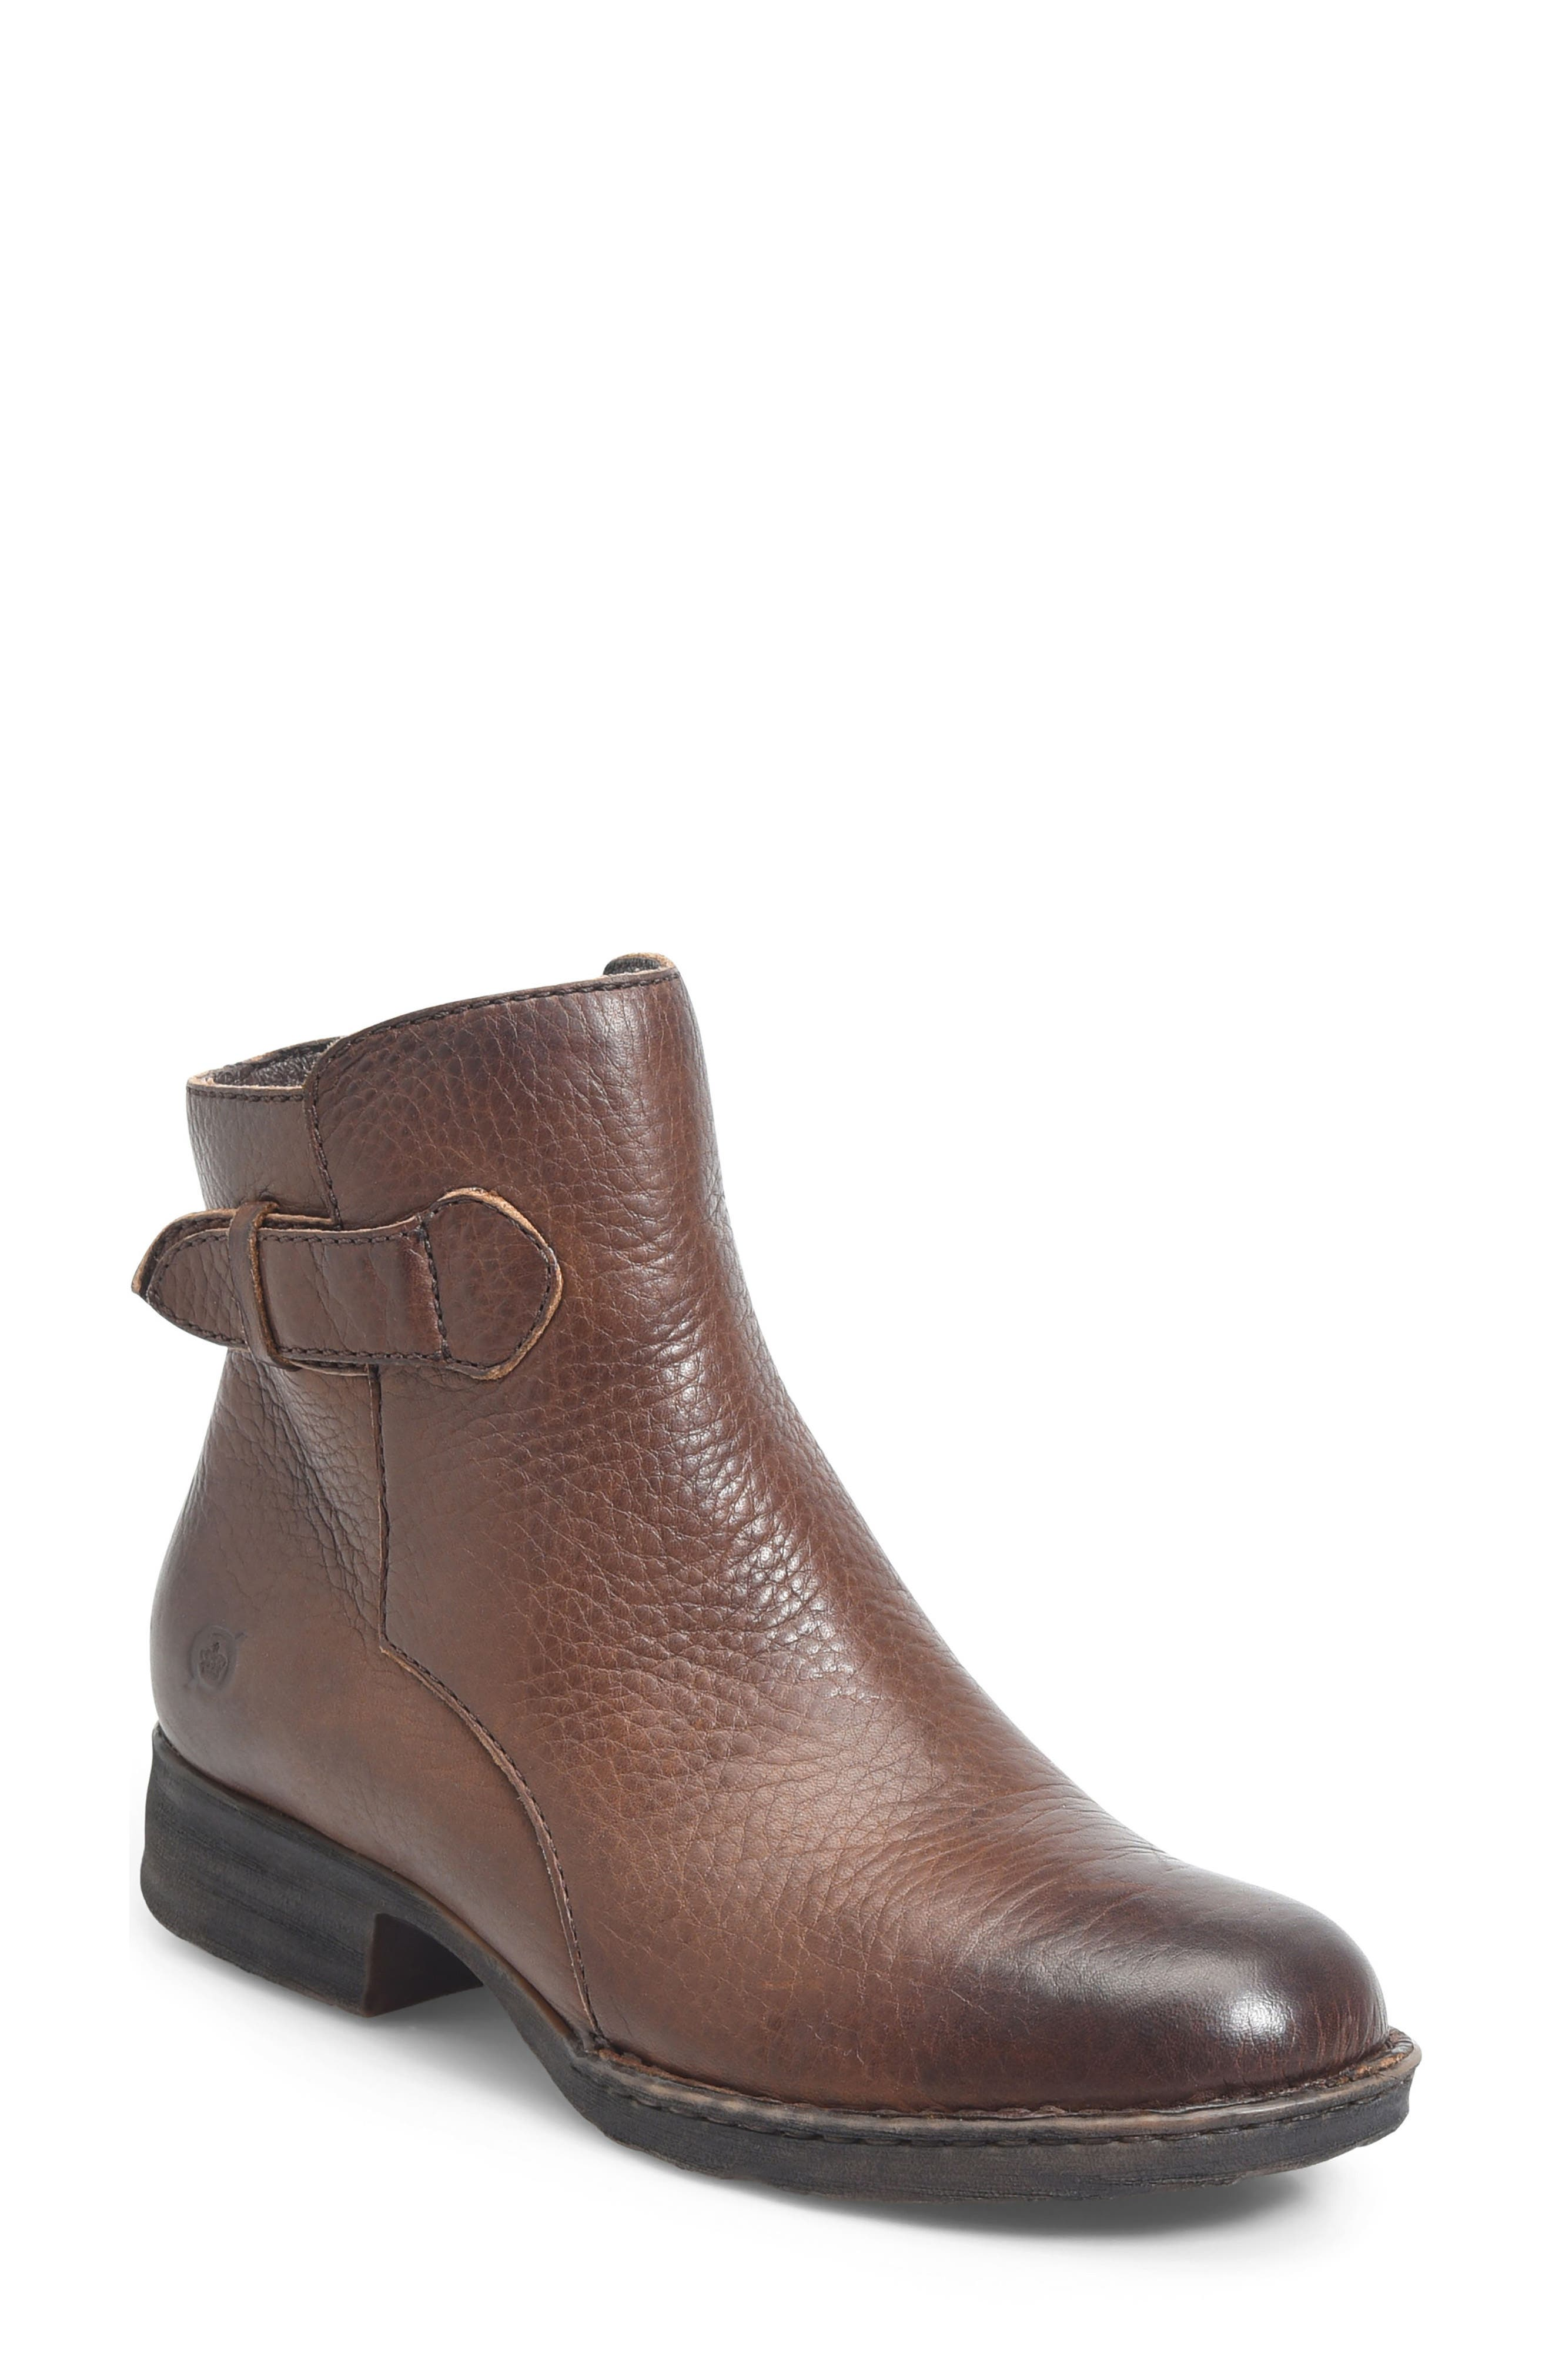 Carbine Bootie,                         Main,                         color, Brown Leather